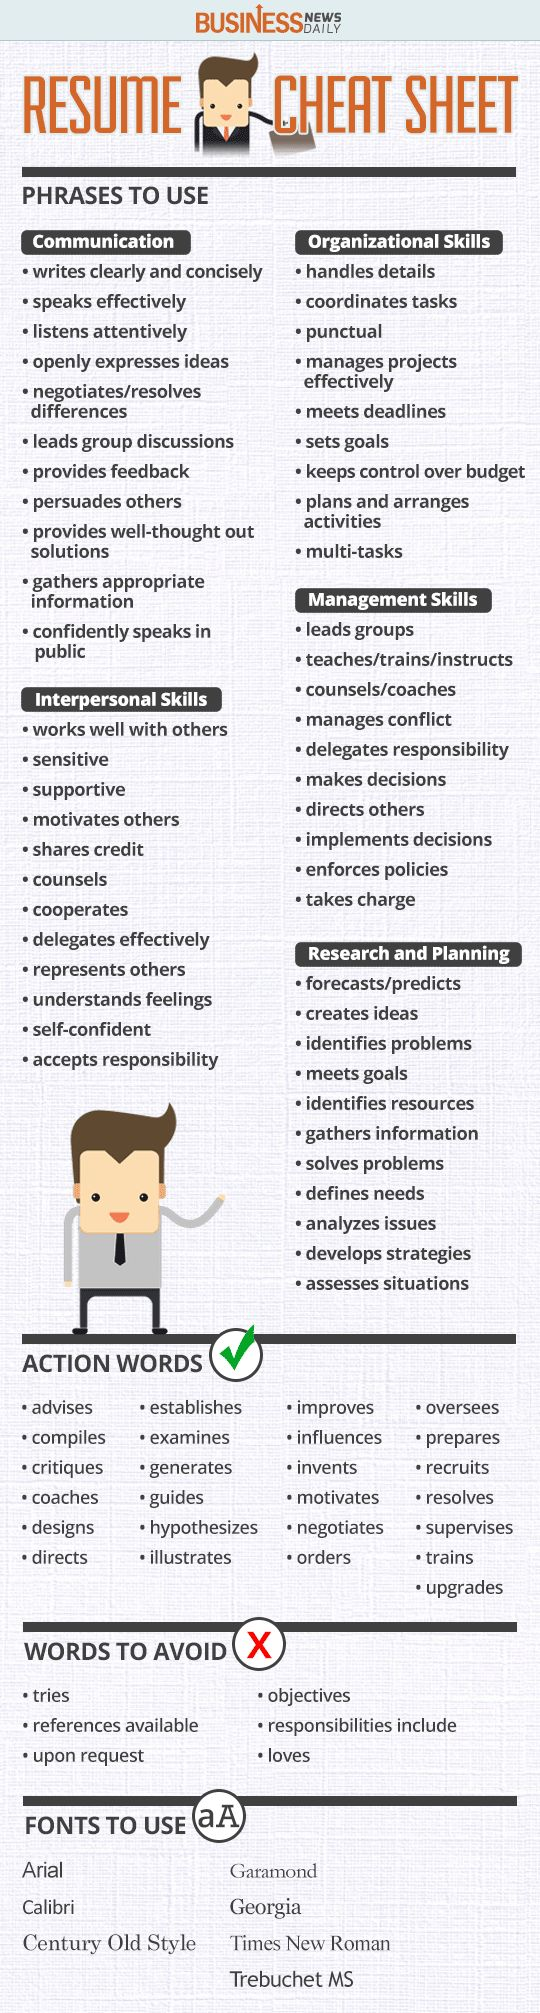 Opposenewapstandardsus  Outstanding  Ideas About Resume On Pinterest  Cv Format Resume Cv And  With Hot Resume Cheat Sheet Infographic Andrews Almost Done With A Complete Unit On Employment Which With Beautiful Resume Service Online Also Walmart Cashier Resume In Addition How To Write A Good Objective For A Resume And Office Resume Examples As Well As Forklift Operator Resume Examples Additionally Interest In Resume From Pinterestcom With Opposenewapstandardsus  Hot  Ideas About Resume On Pinterest  Cv Format Resume Cv And  With Beautiful Resume Cheat Sheet Infographic Andrews Almost Done With A Complete Unit On Employment Which And Outstanding Resume Service Online Also Walmart Cashier Resume In Addition How To Write A Good Objective For A Resume From Pinterestcom